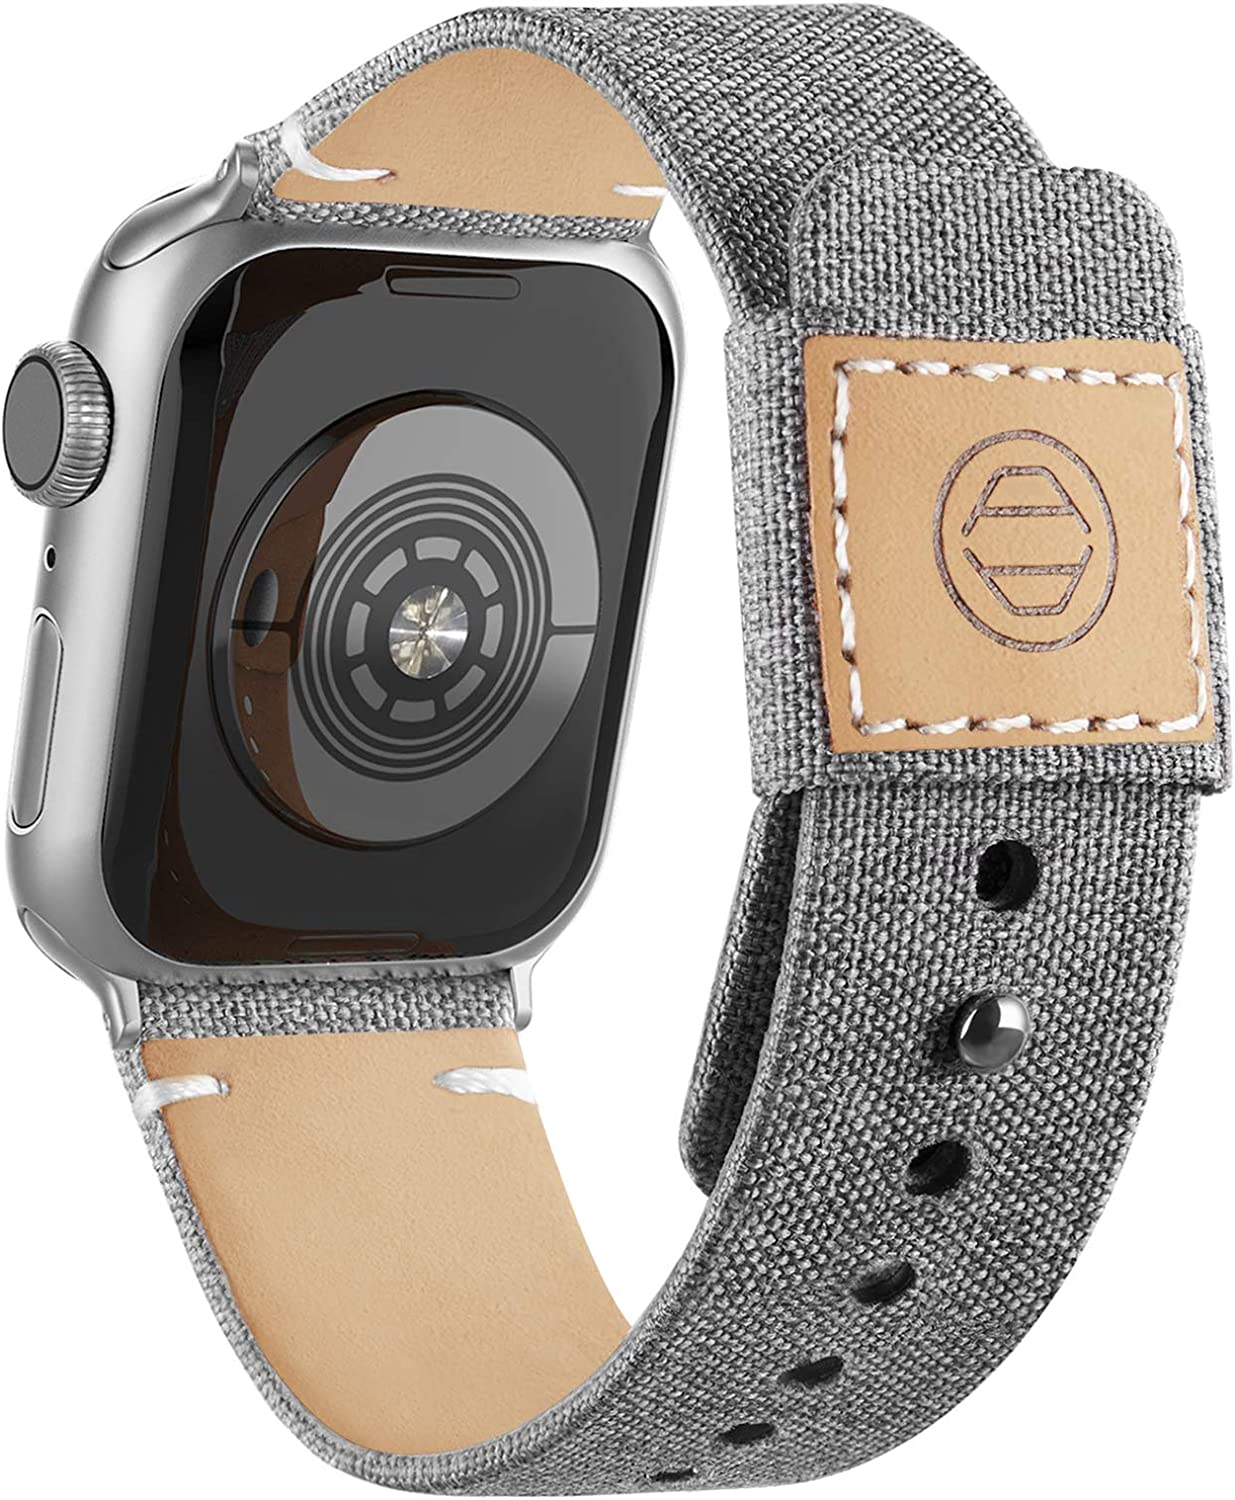 Adepoy Fabric Cloth Bands Compatible with Apple Watch 44mm 42mm 40mm 38mm, Canvas Strap with Soft Genuine Leather Lining and Snap Button for Apple iwatch Series 6/5/4/3/2/1 SE,Gray 38/40mm